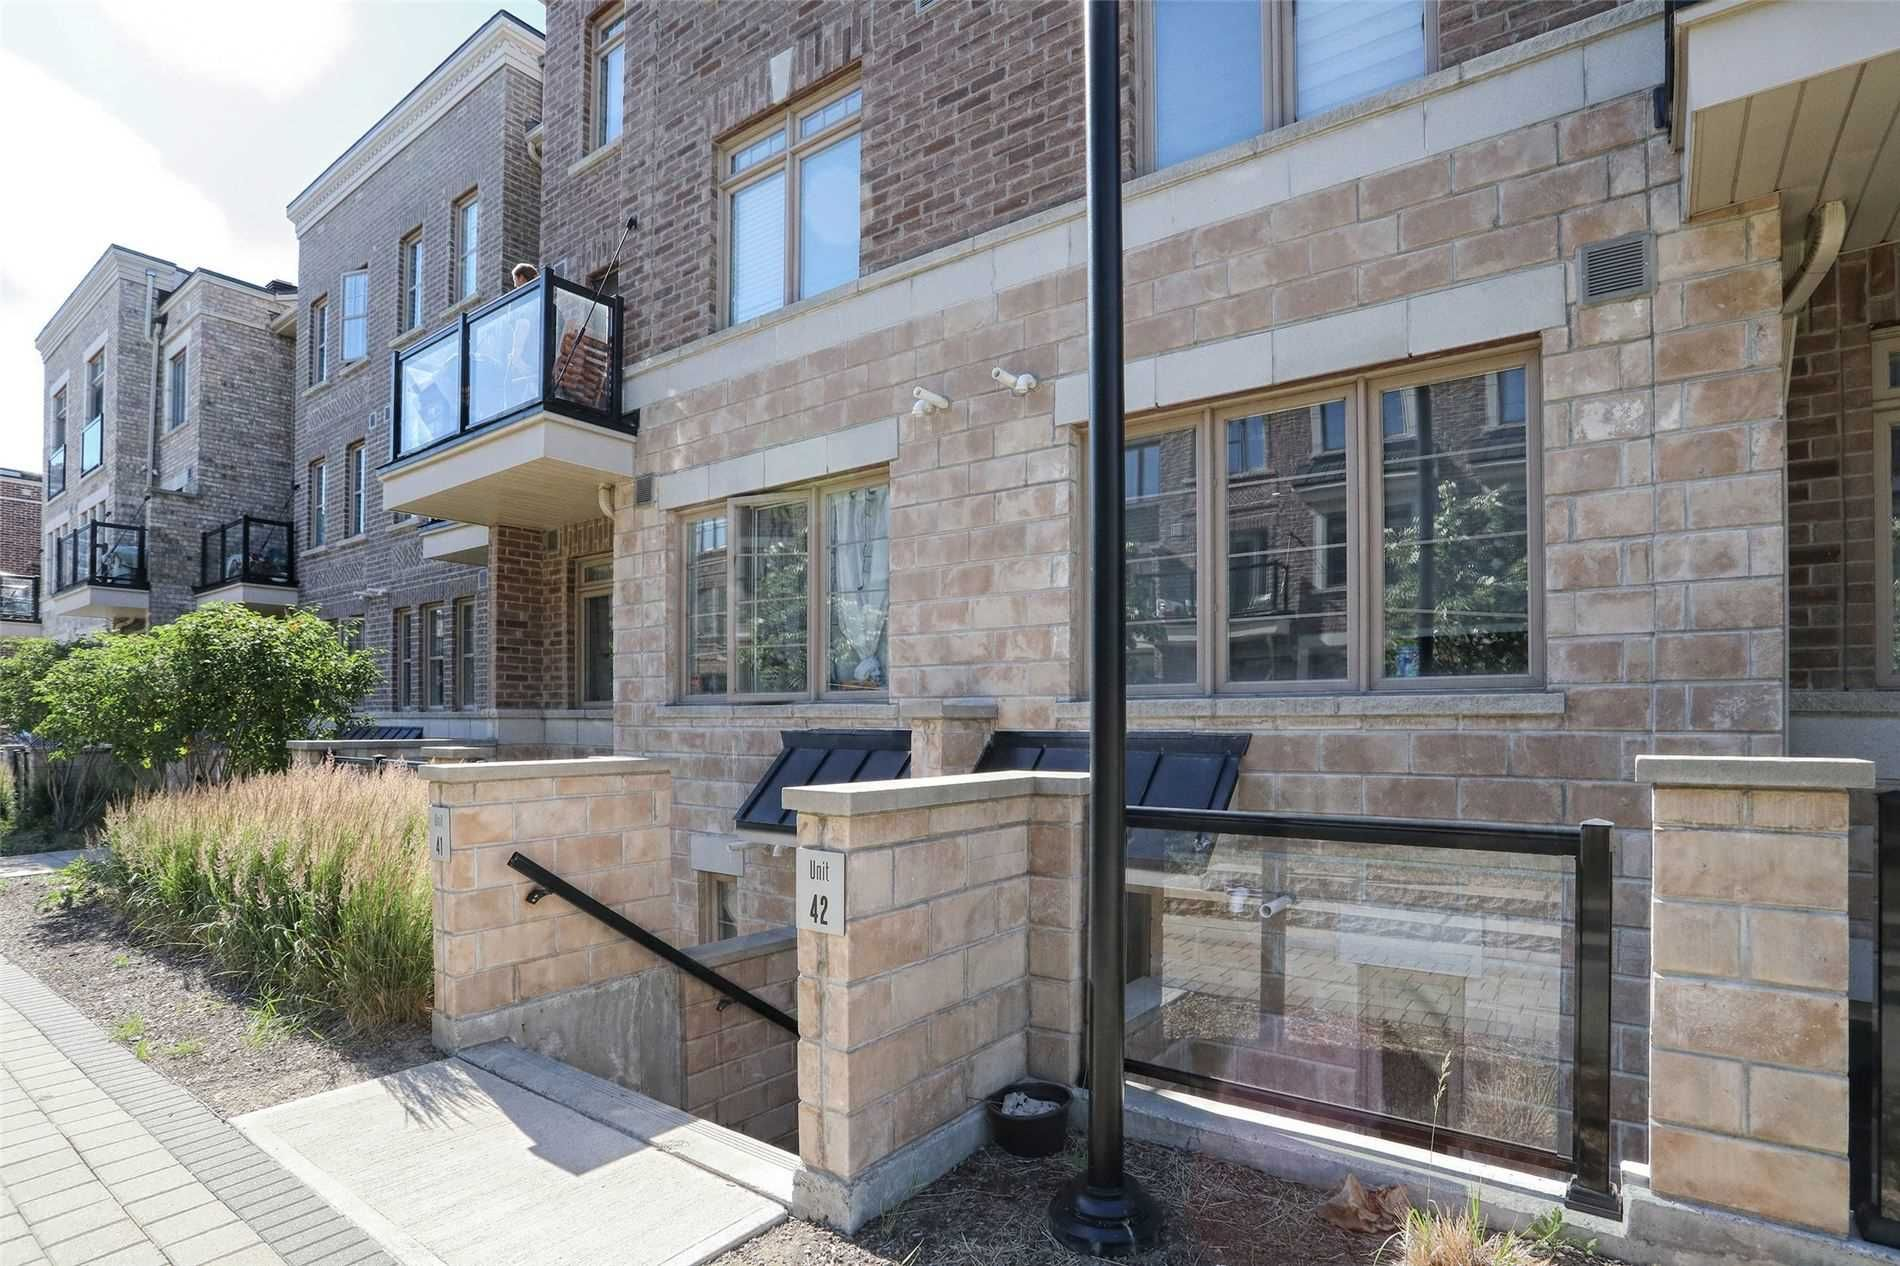 2315 Sheppard Ave, unit 42 for sale in Toronto - image #1